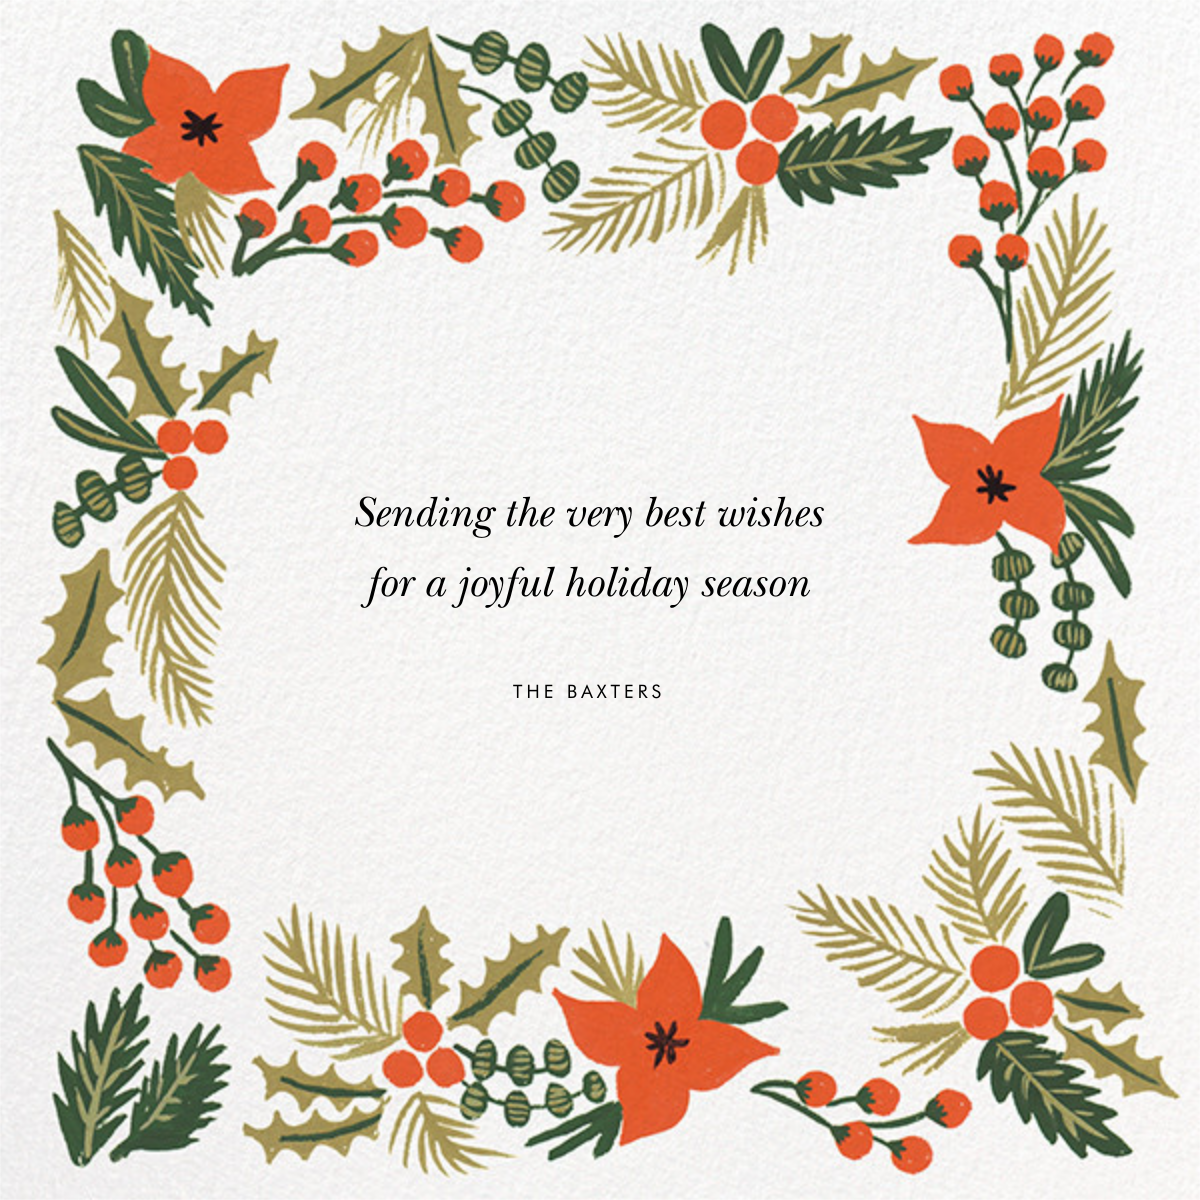 Holiday Potpourri (Square Photo) - Rifle Paper Co. - Holiday cards - card back